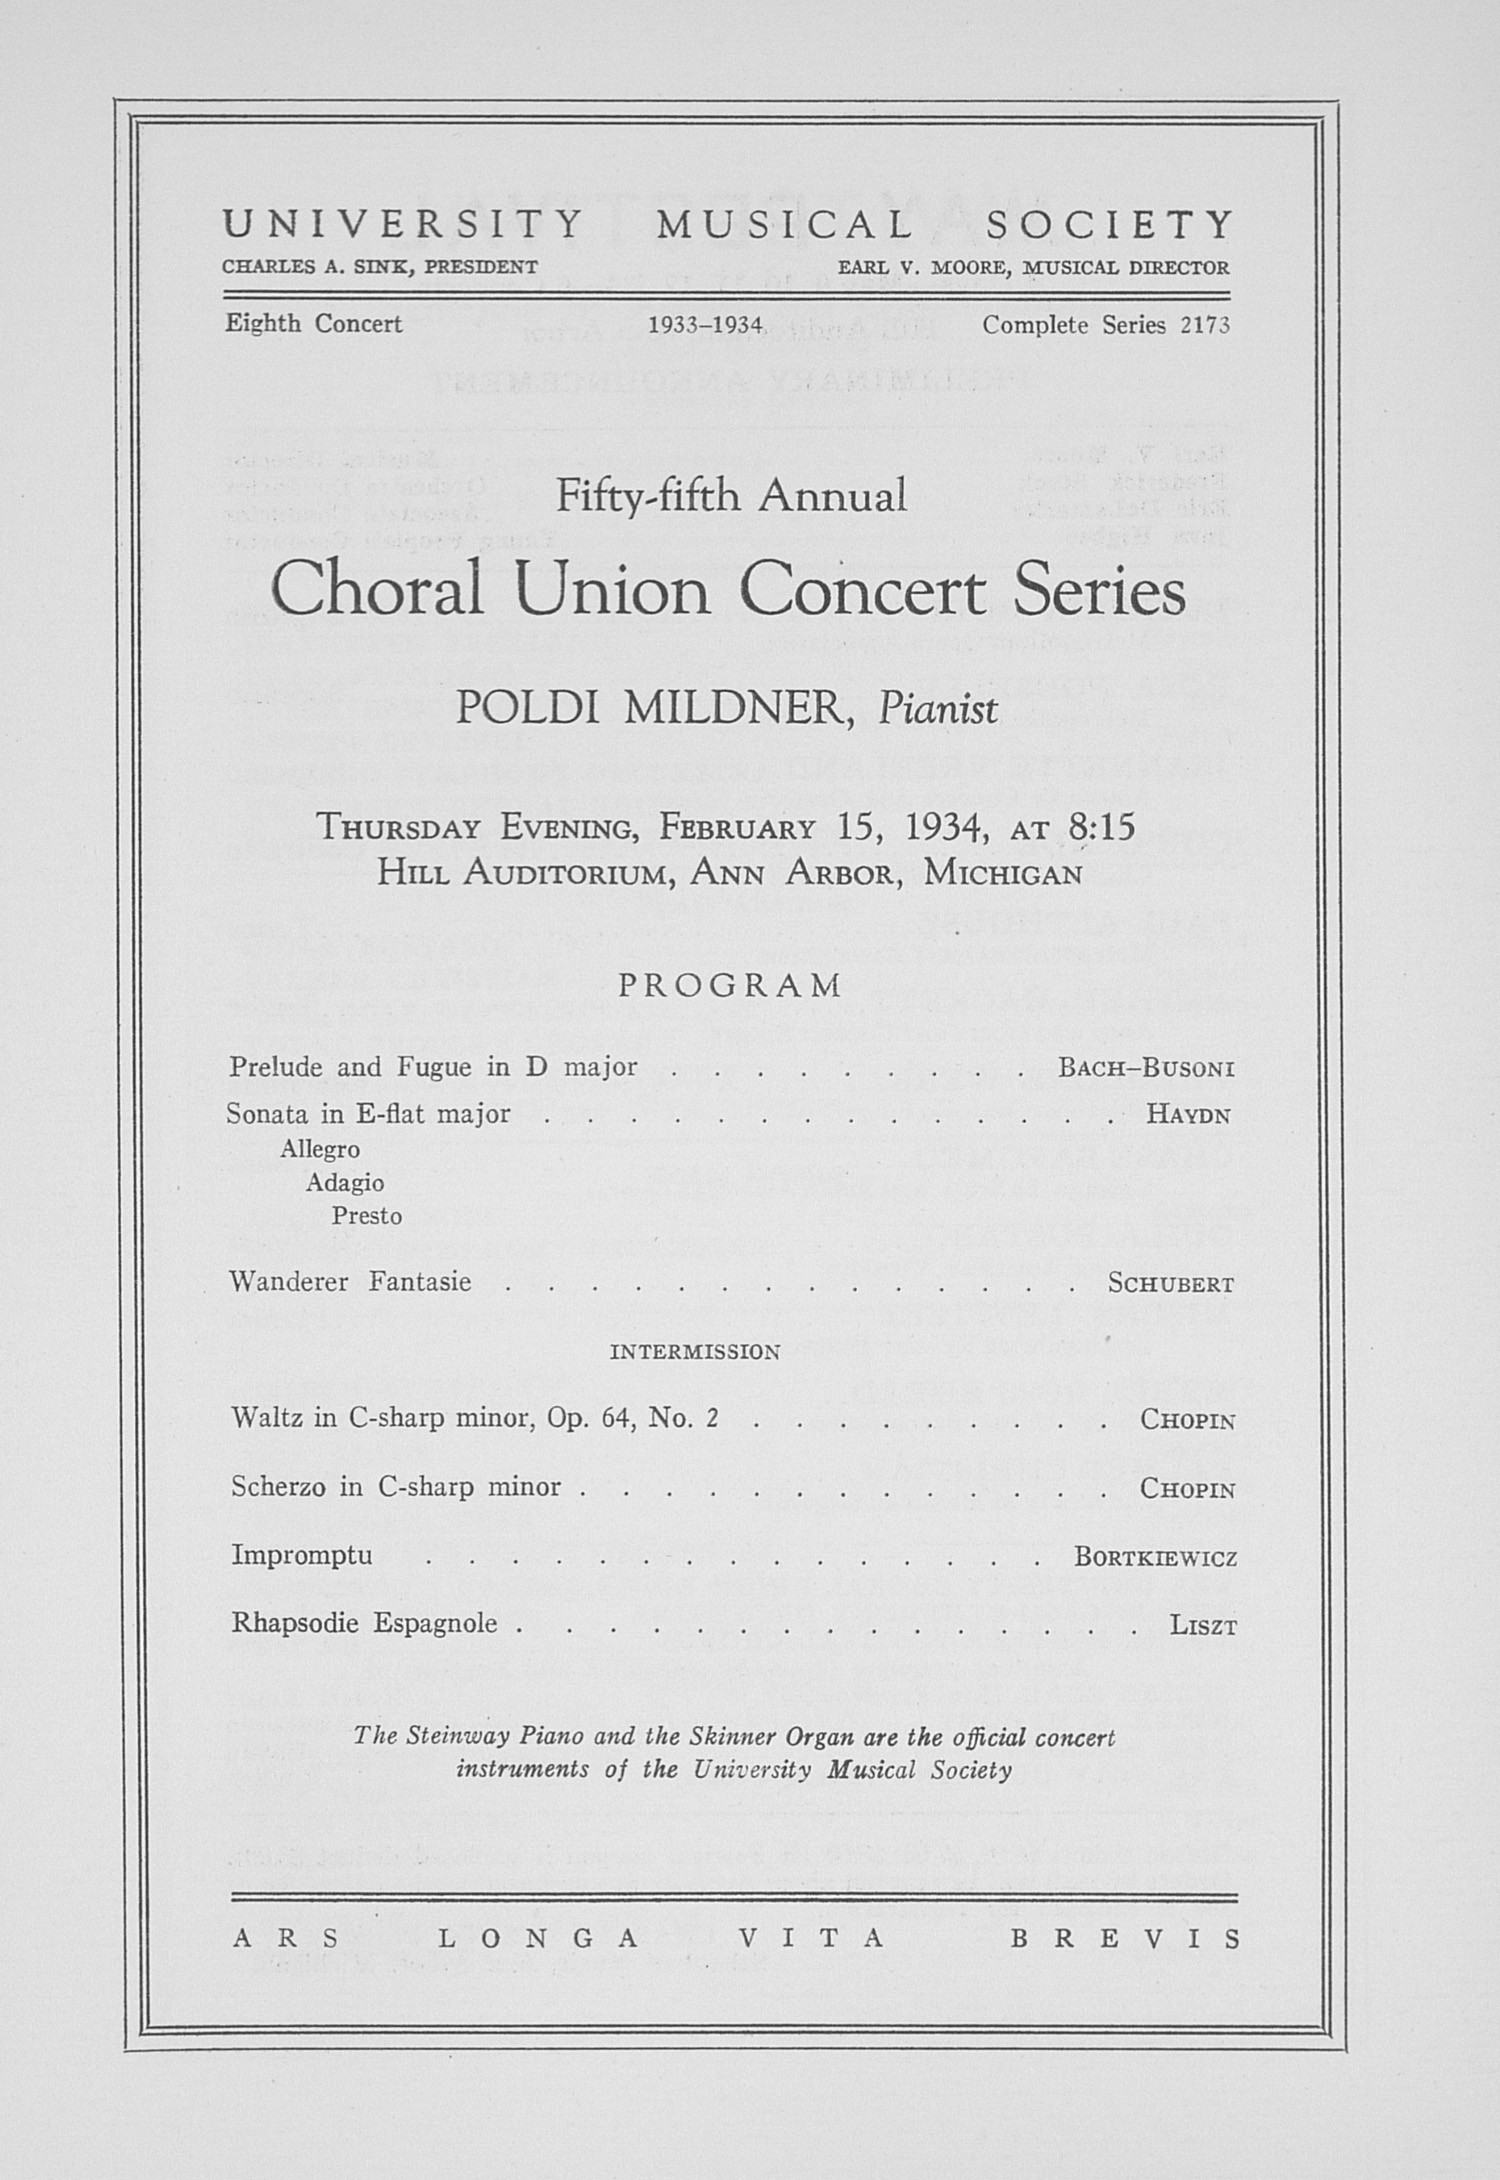 UMS Concert Program, February 15, 1934: Choral Union Concert Series -- Poldi Mildner image